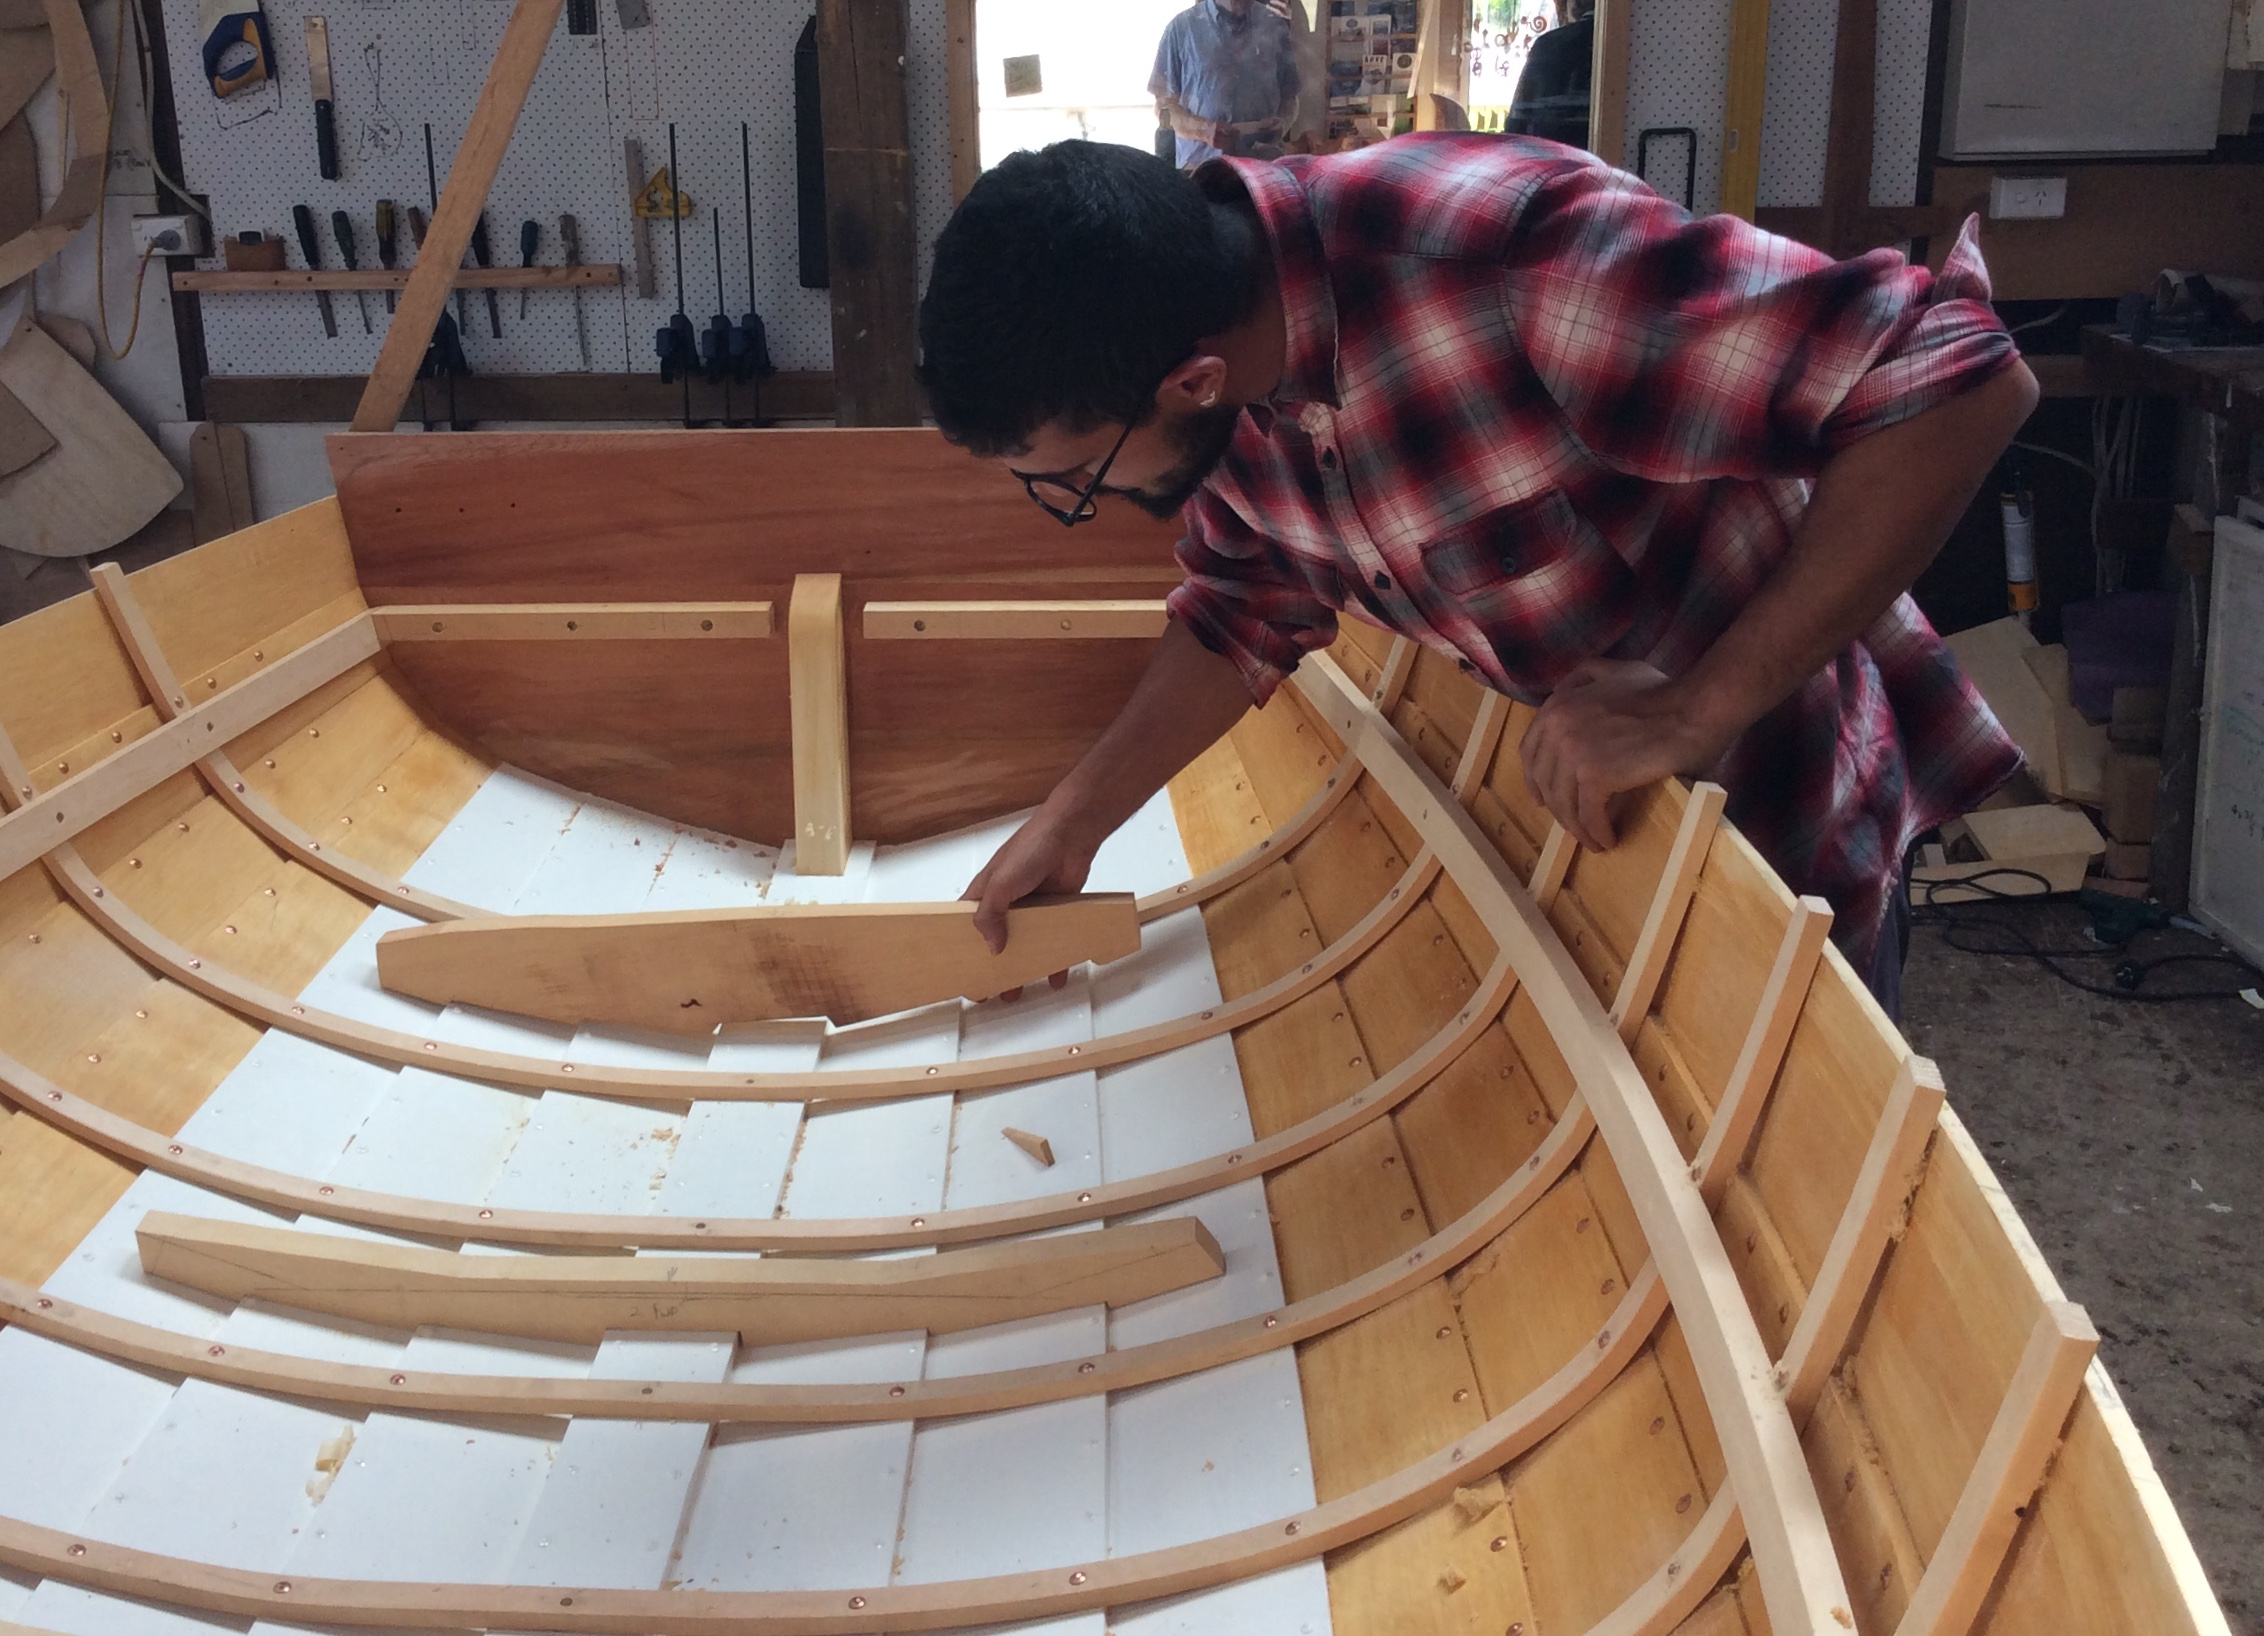 Salvatore' is a design student from Italy.  He has strong wood working skills and was looking to spend some time in the boat shed to learn about traditional wooden design and boatbuilding techniques.  He spent time with Mike Johnson steaming ribs and fabricating timber components on a Foster 10.  He also assisted Pete Laidlaw replacing a plank on the old 18' Couta boat.  He loved his time with us and I'm sure will replicate some of these skills when he establishes his planned design collective business back home.    We regularly offer short stints of time to people wishing to experience the boat shed work environment or to those wishing to acquire a particular bunch of skills.